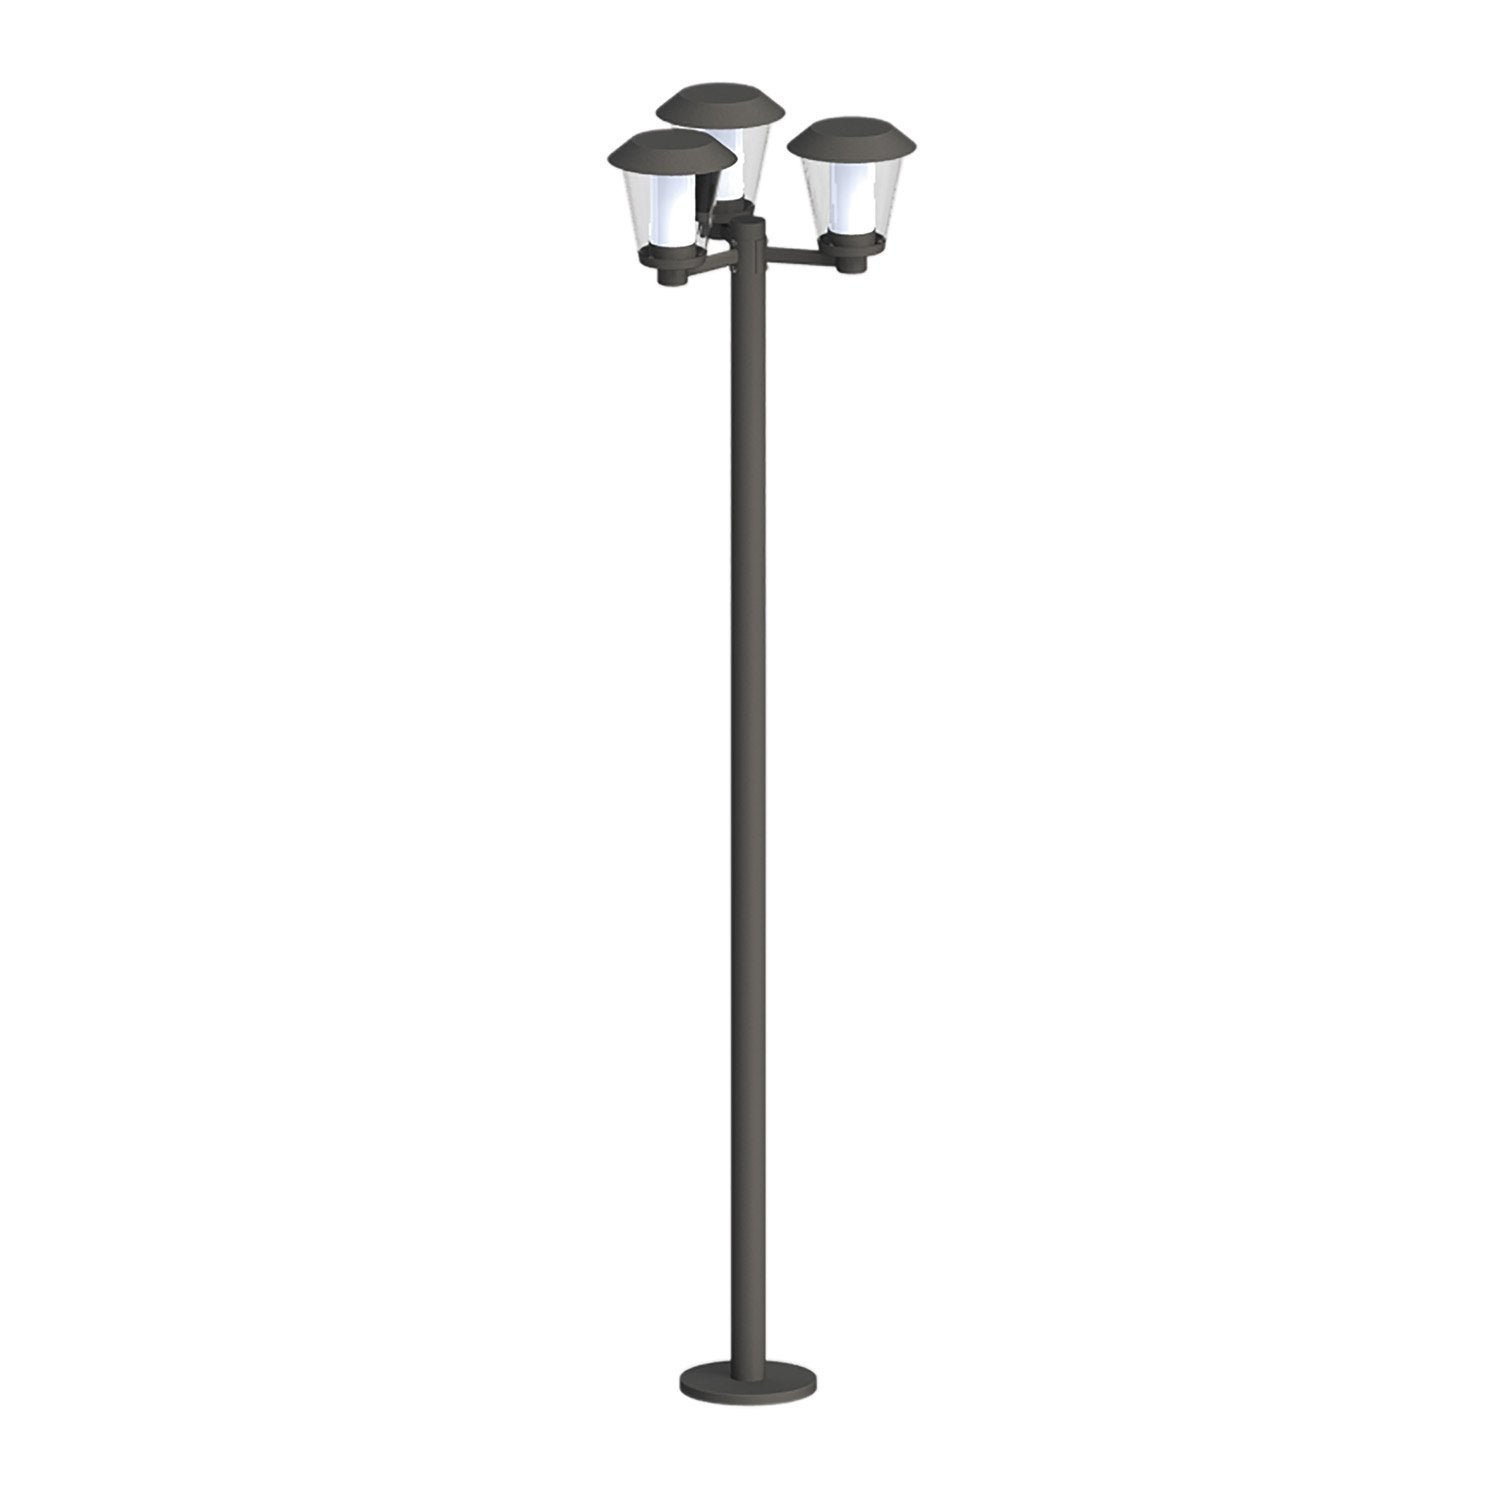 lampadaire ext rieur paterno led int gr e 840 lm noir eglo leroy merlin. Black Bedroom Furniture Sets. Home Design Ideas